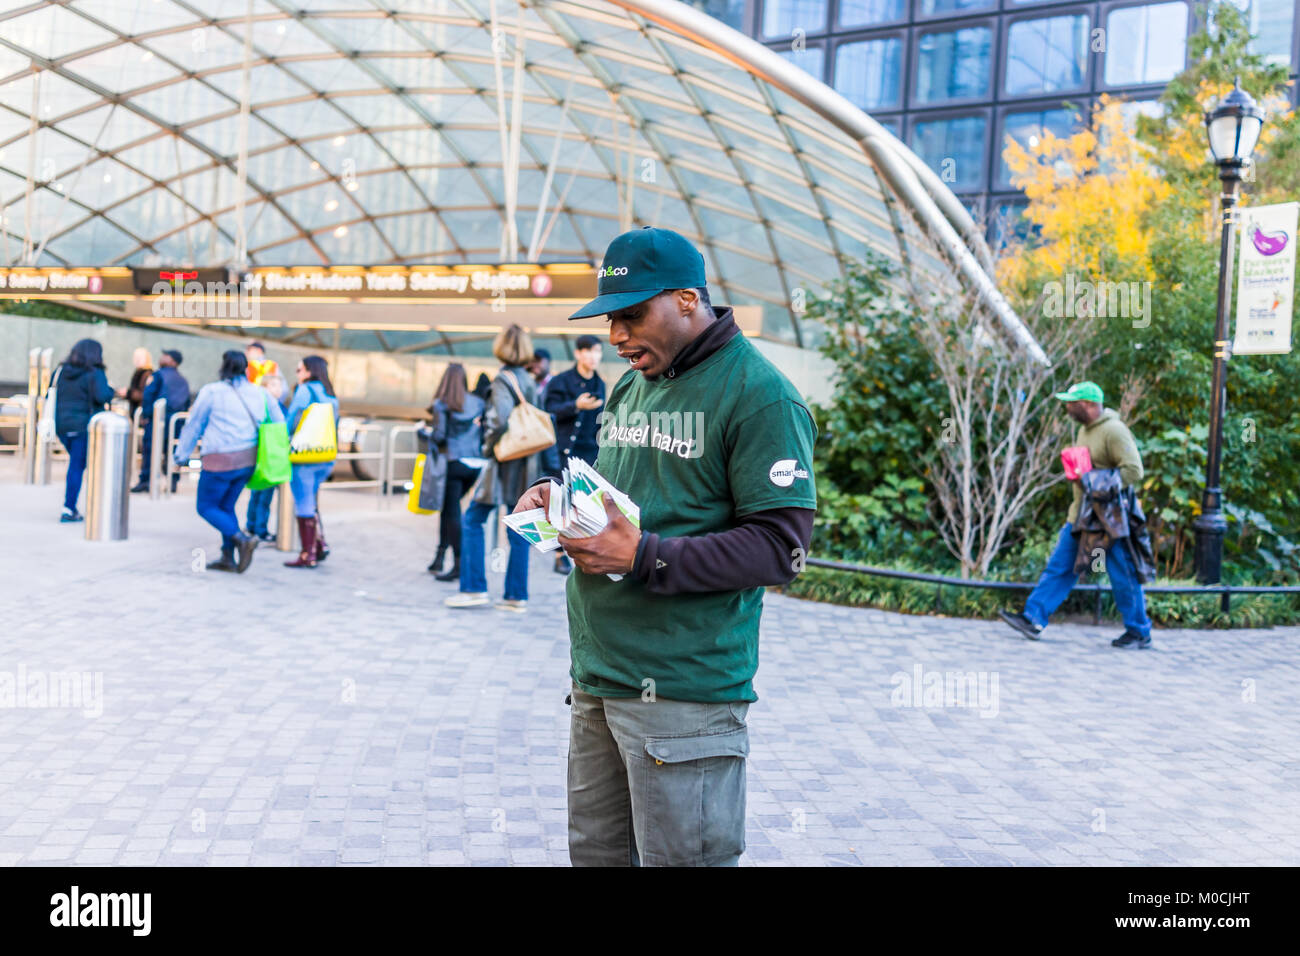 Handing Out Stock Photos & Handing Out Stock Images - Alamy